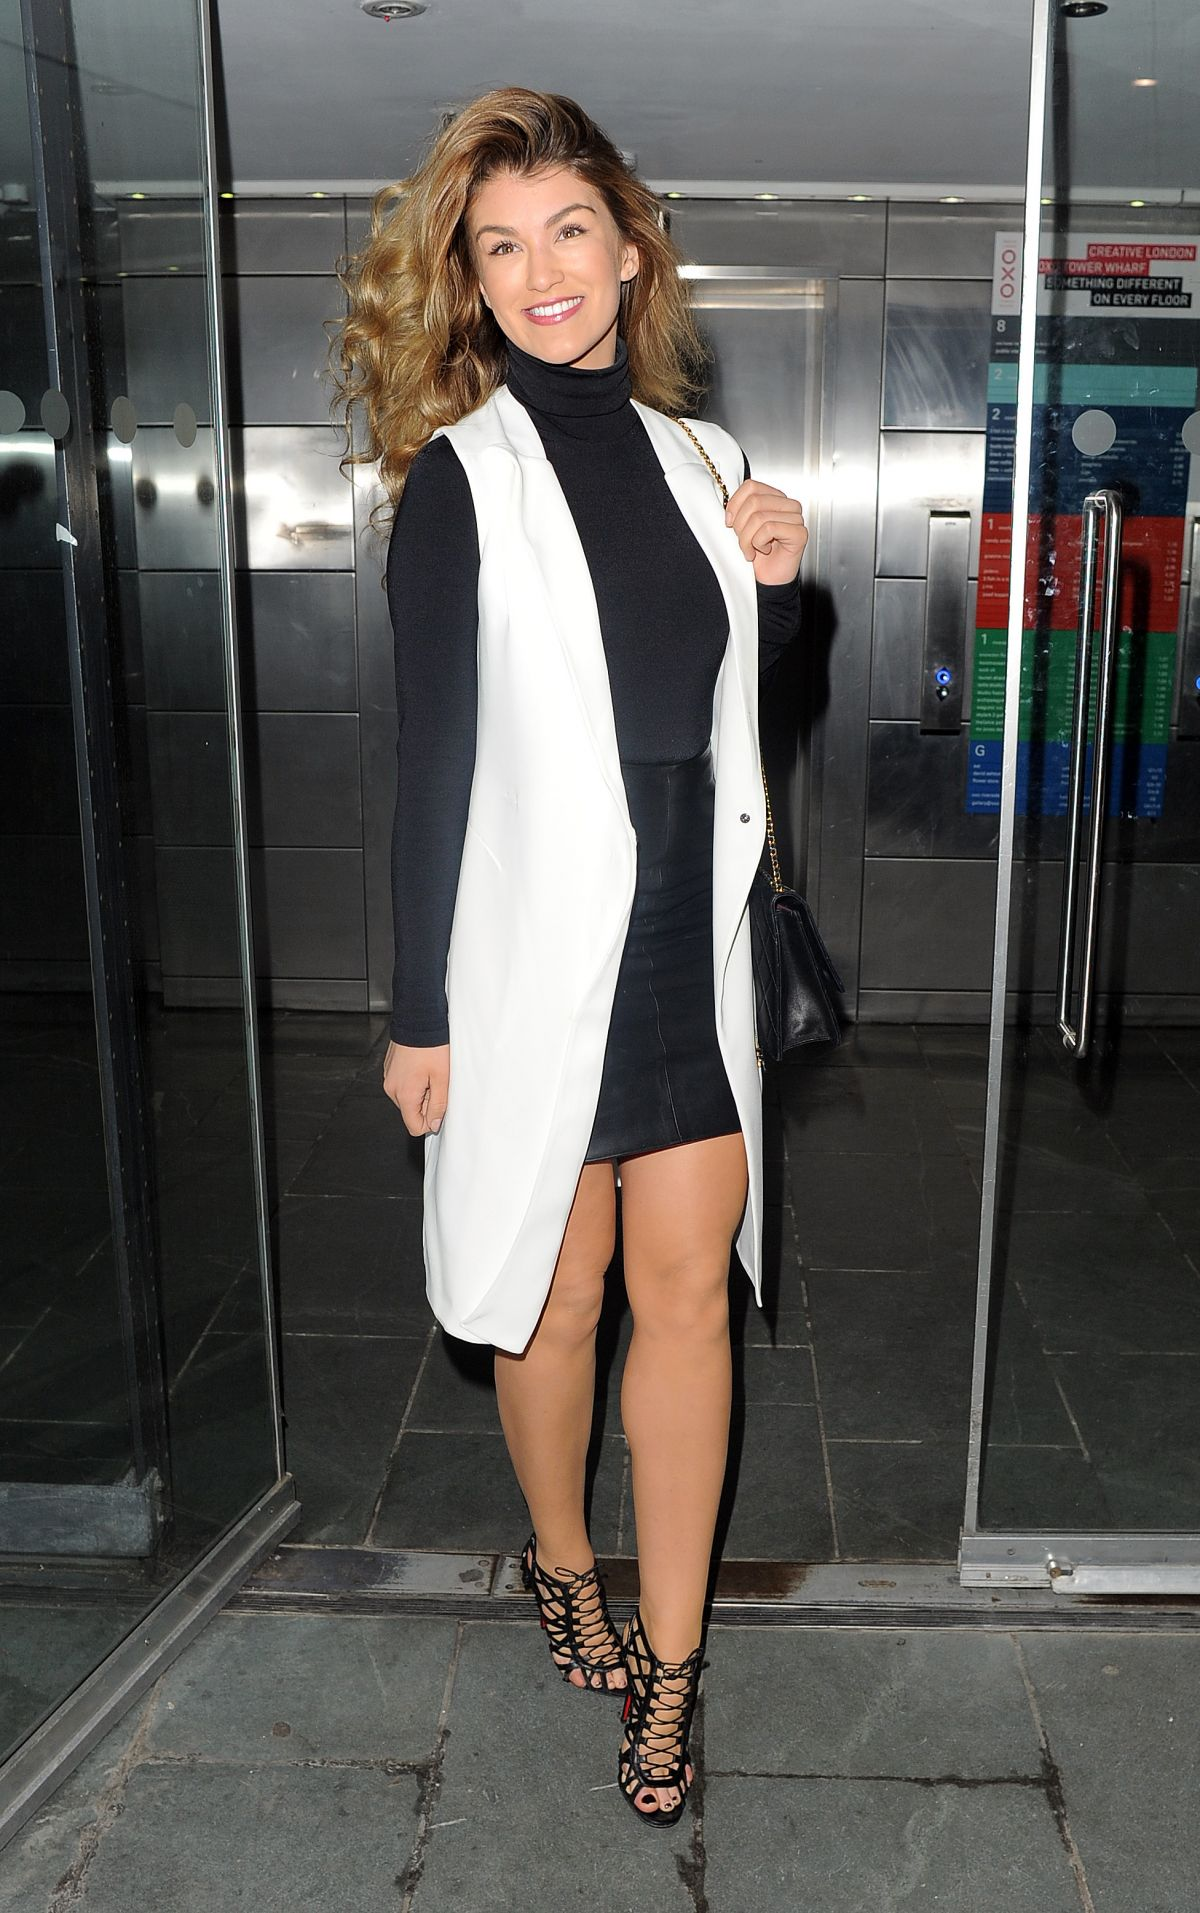 AMY WILLERTON at John Frieda Launch Party in London